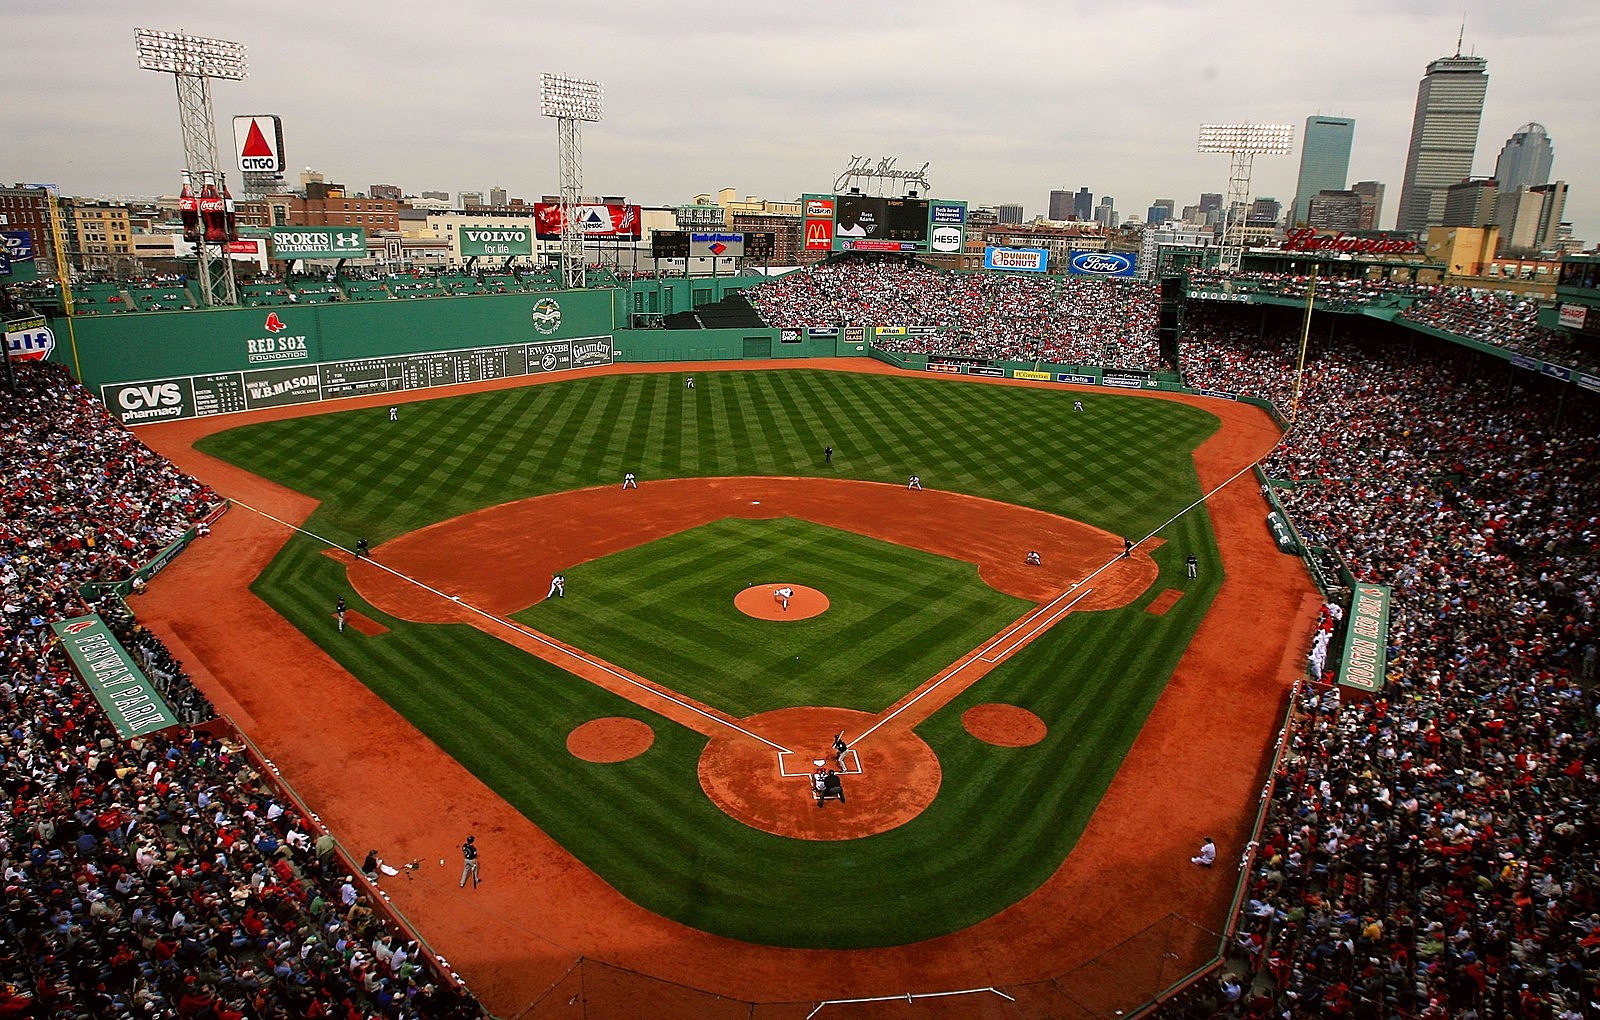 Fenway Will Be The States 2nd Mass-Vaccination Site